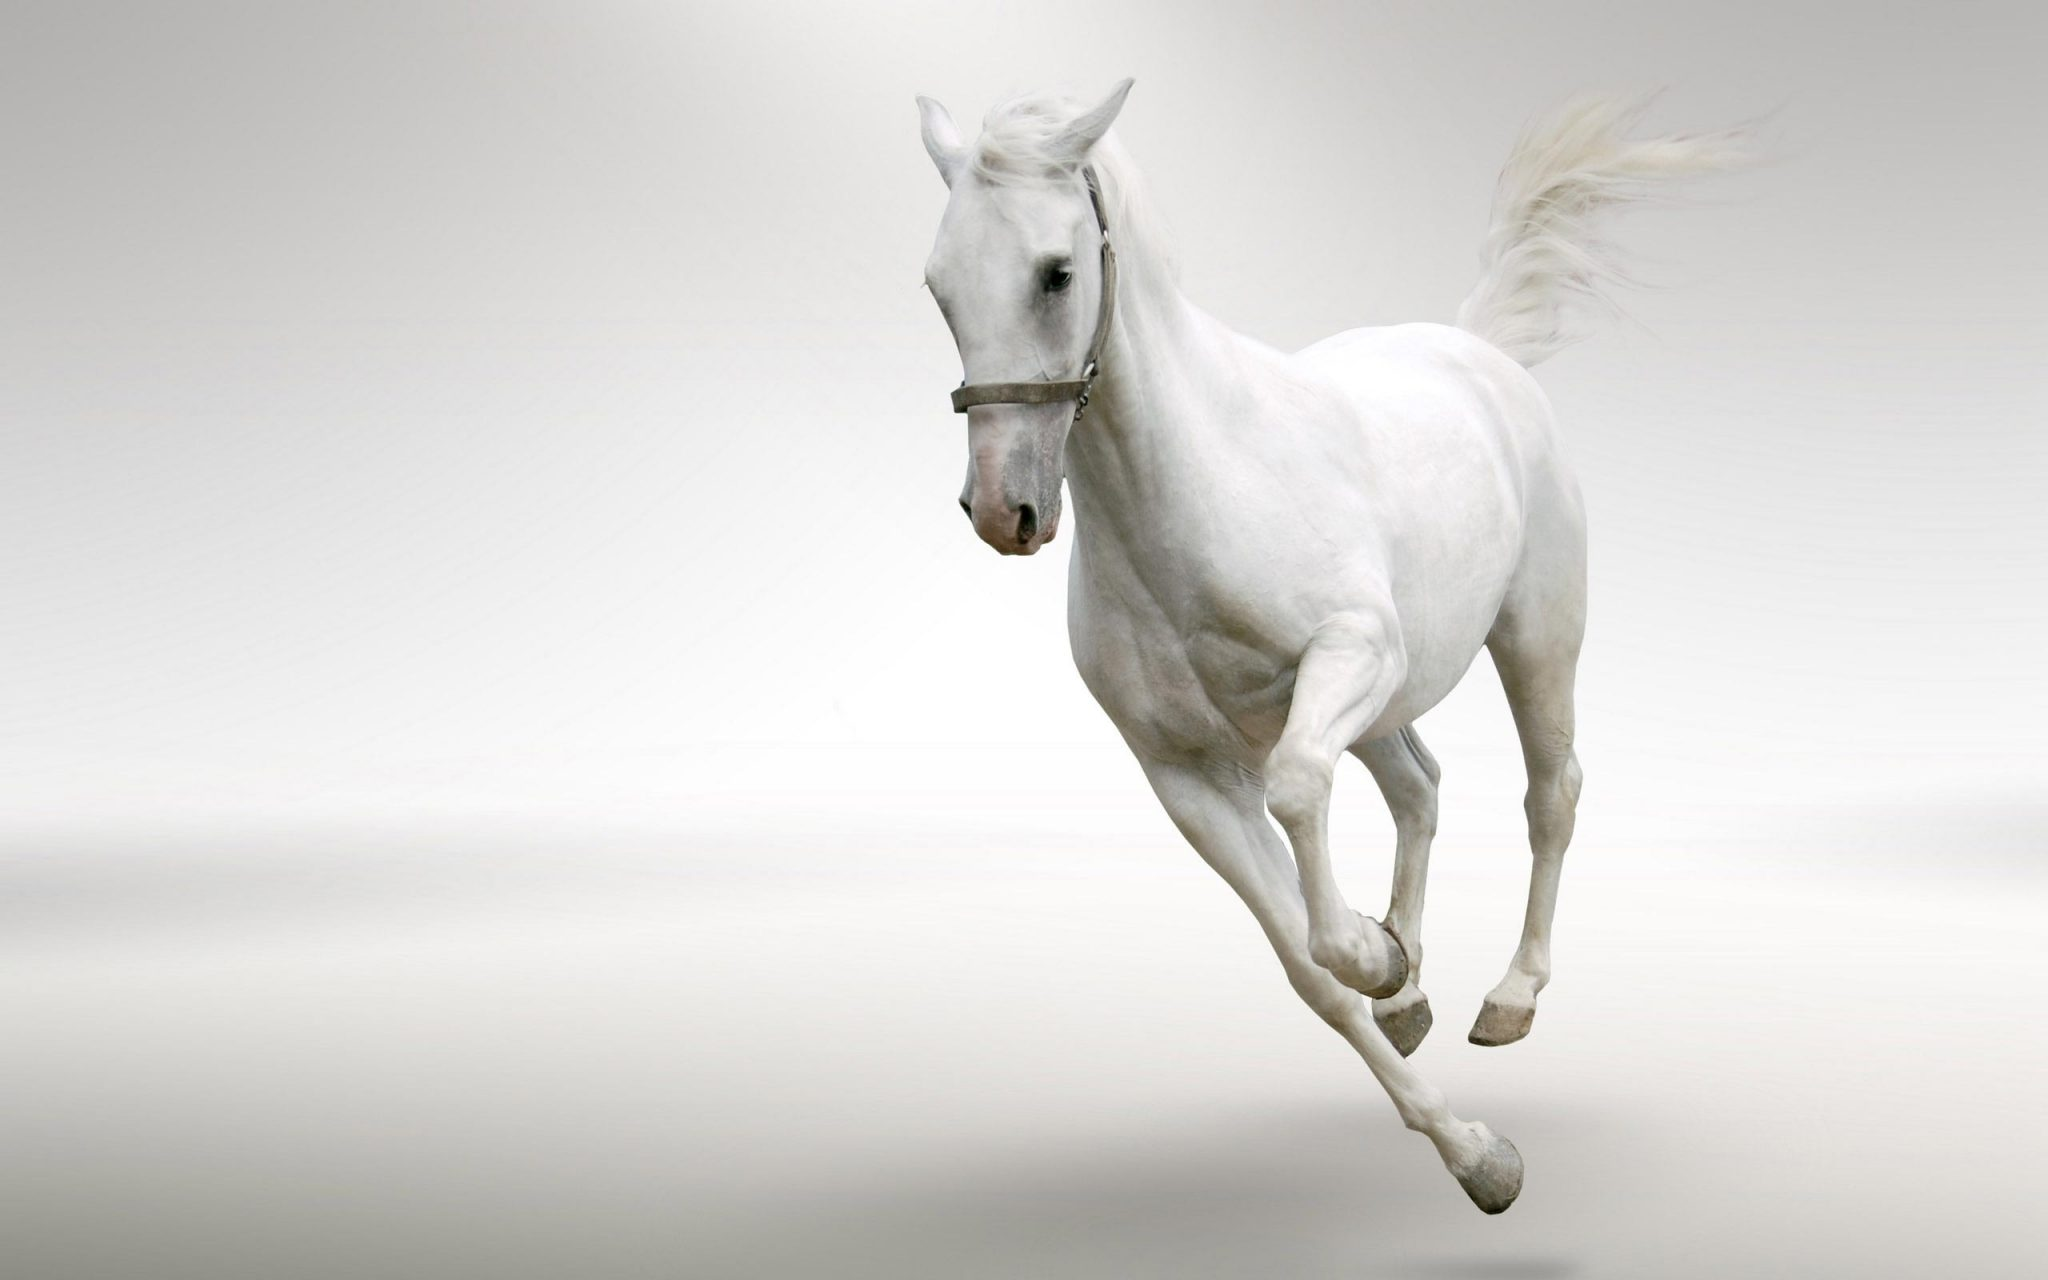 white-horses-running-wallpaper-2